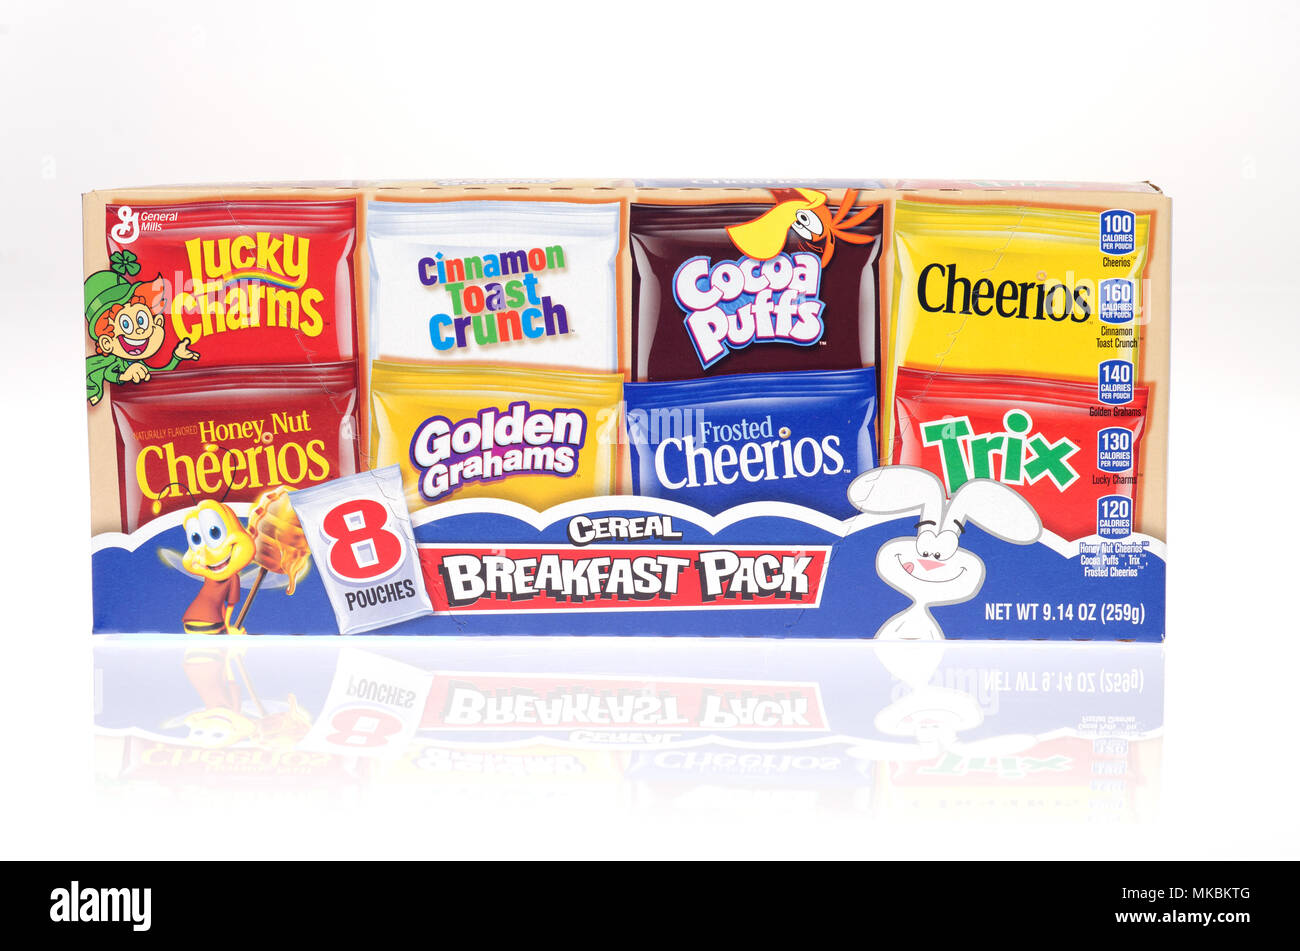 General Mills cereal variety pack of assorted cereals including Lucky Charms, Honey Nut Cheerios - Stock Image